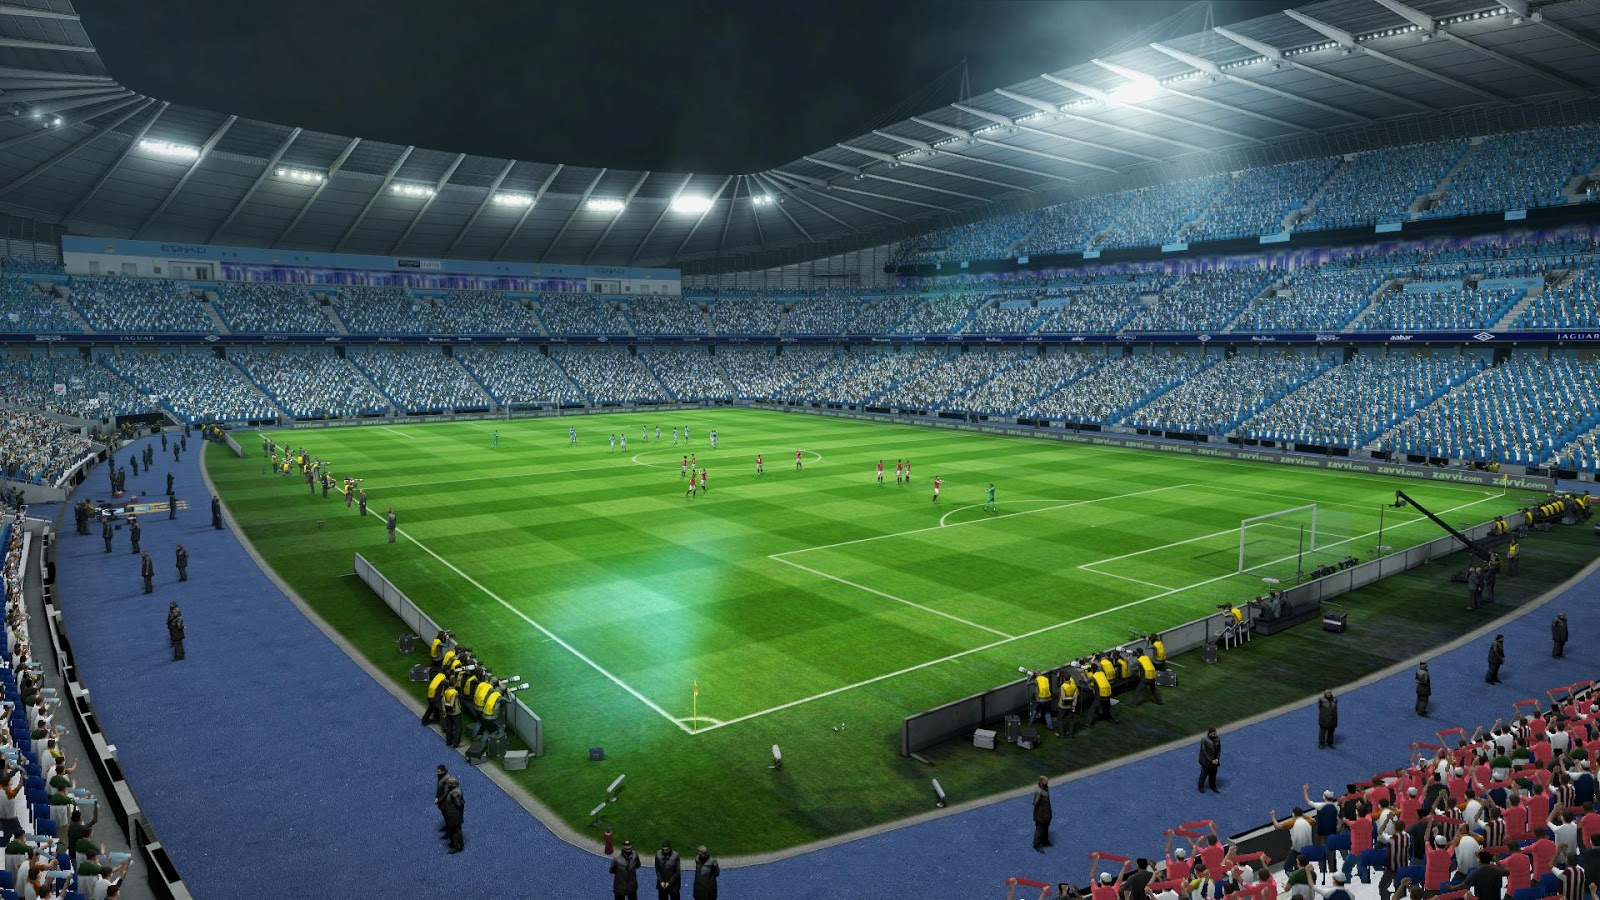 etihad stadium - photo #7